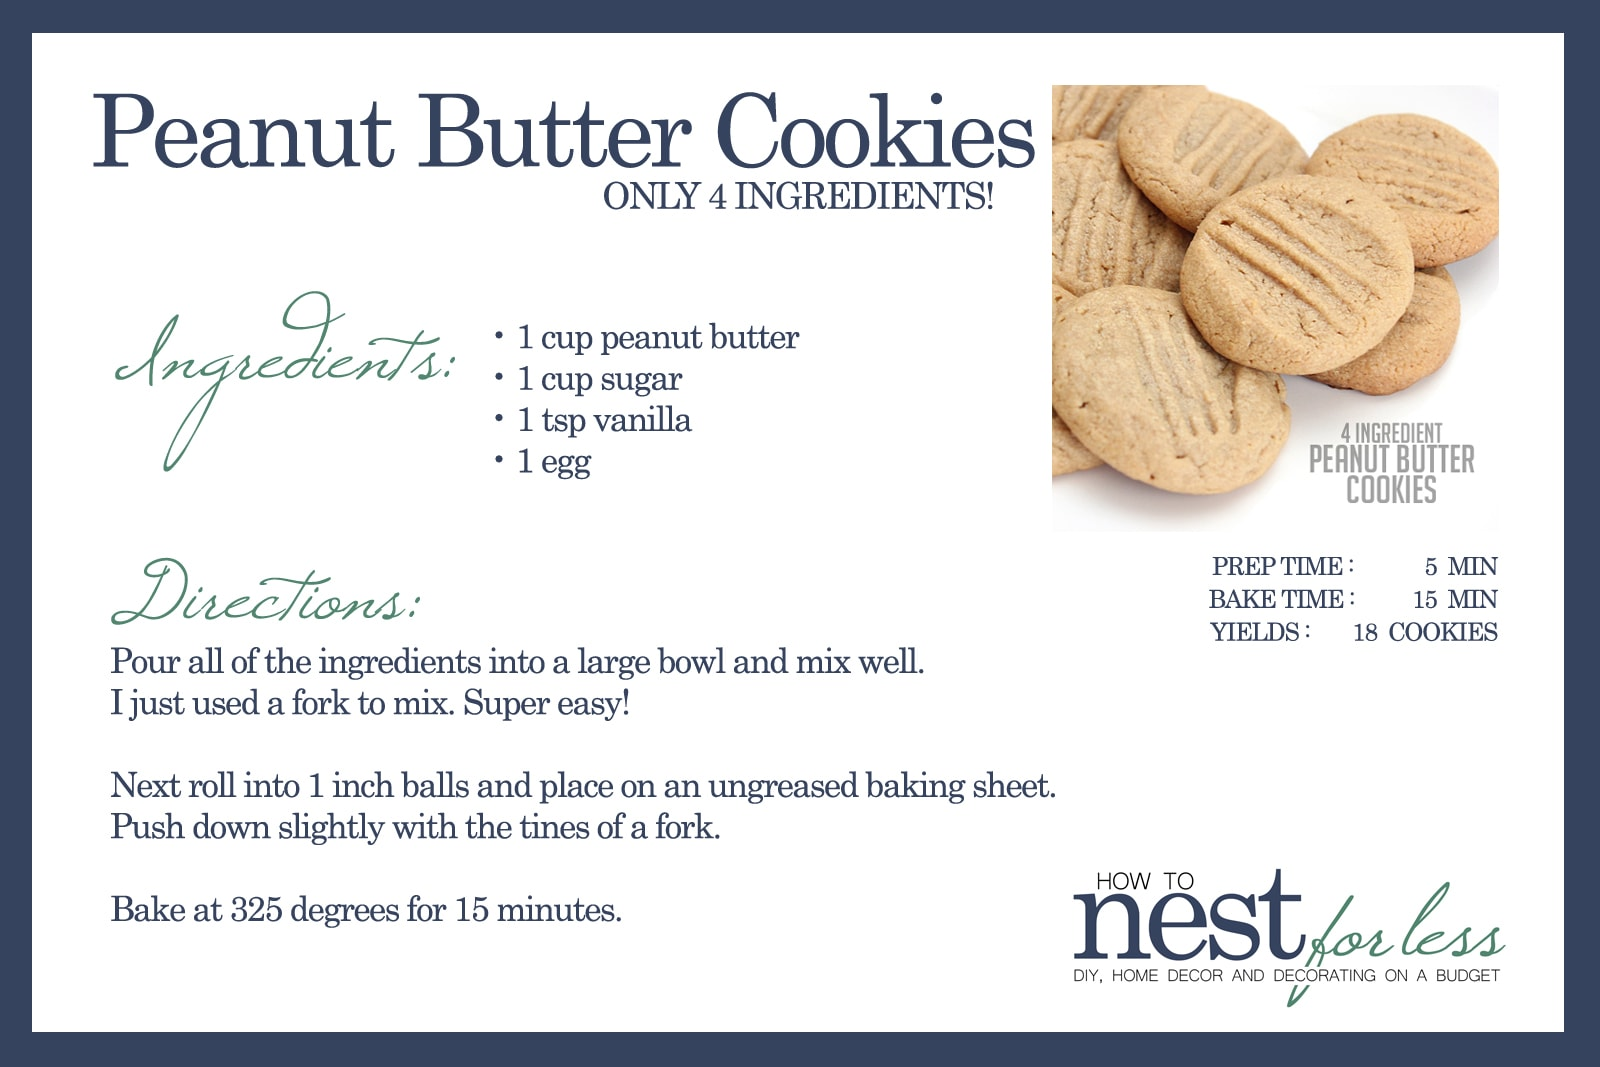 Peanut Butter Cookies Recipe Card